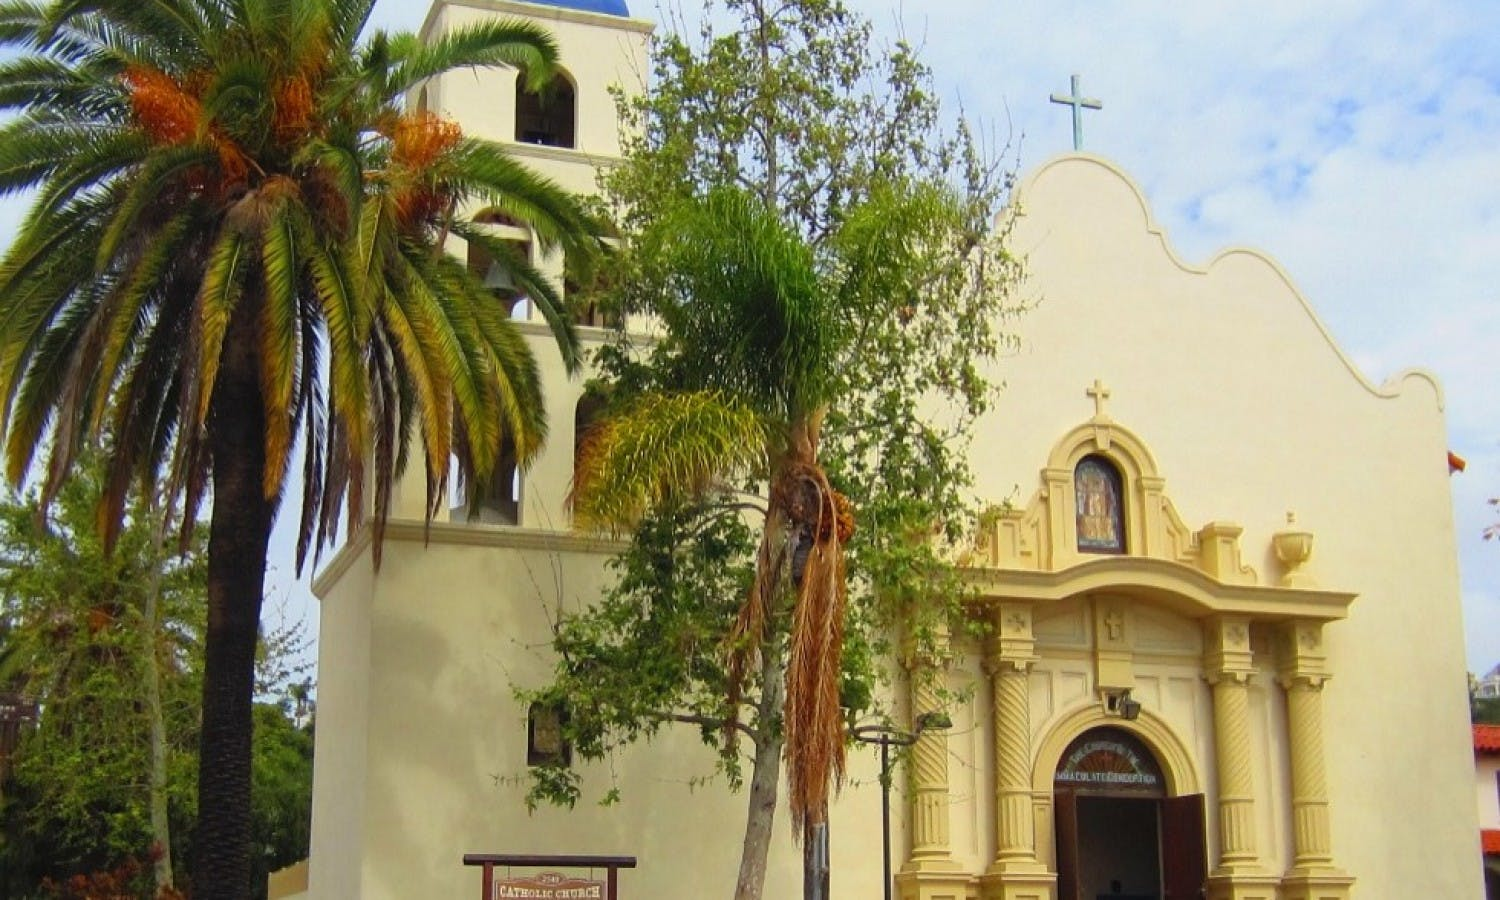 Guided walking tour of Old Town in San Diego